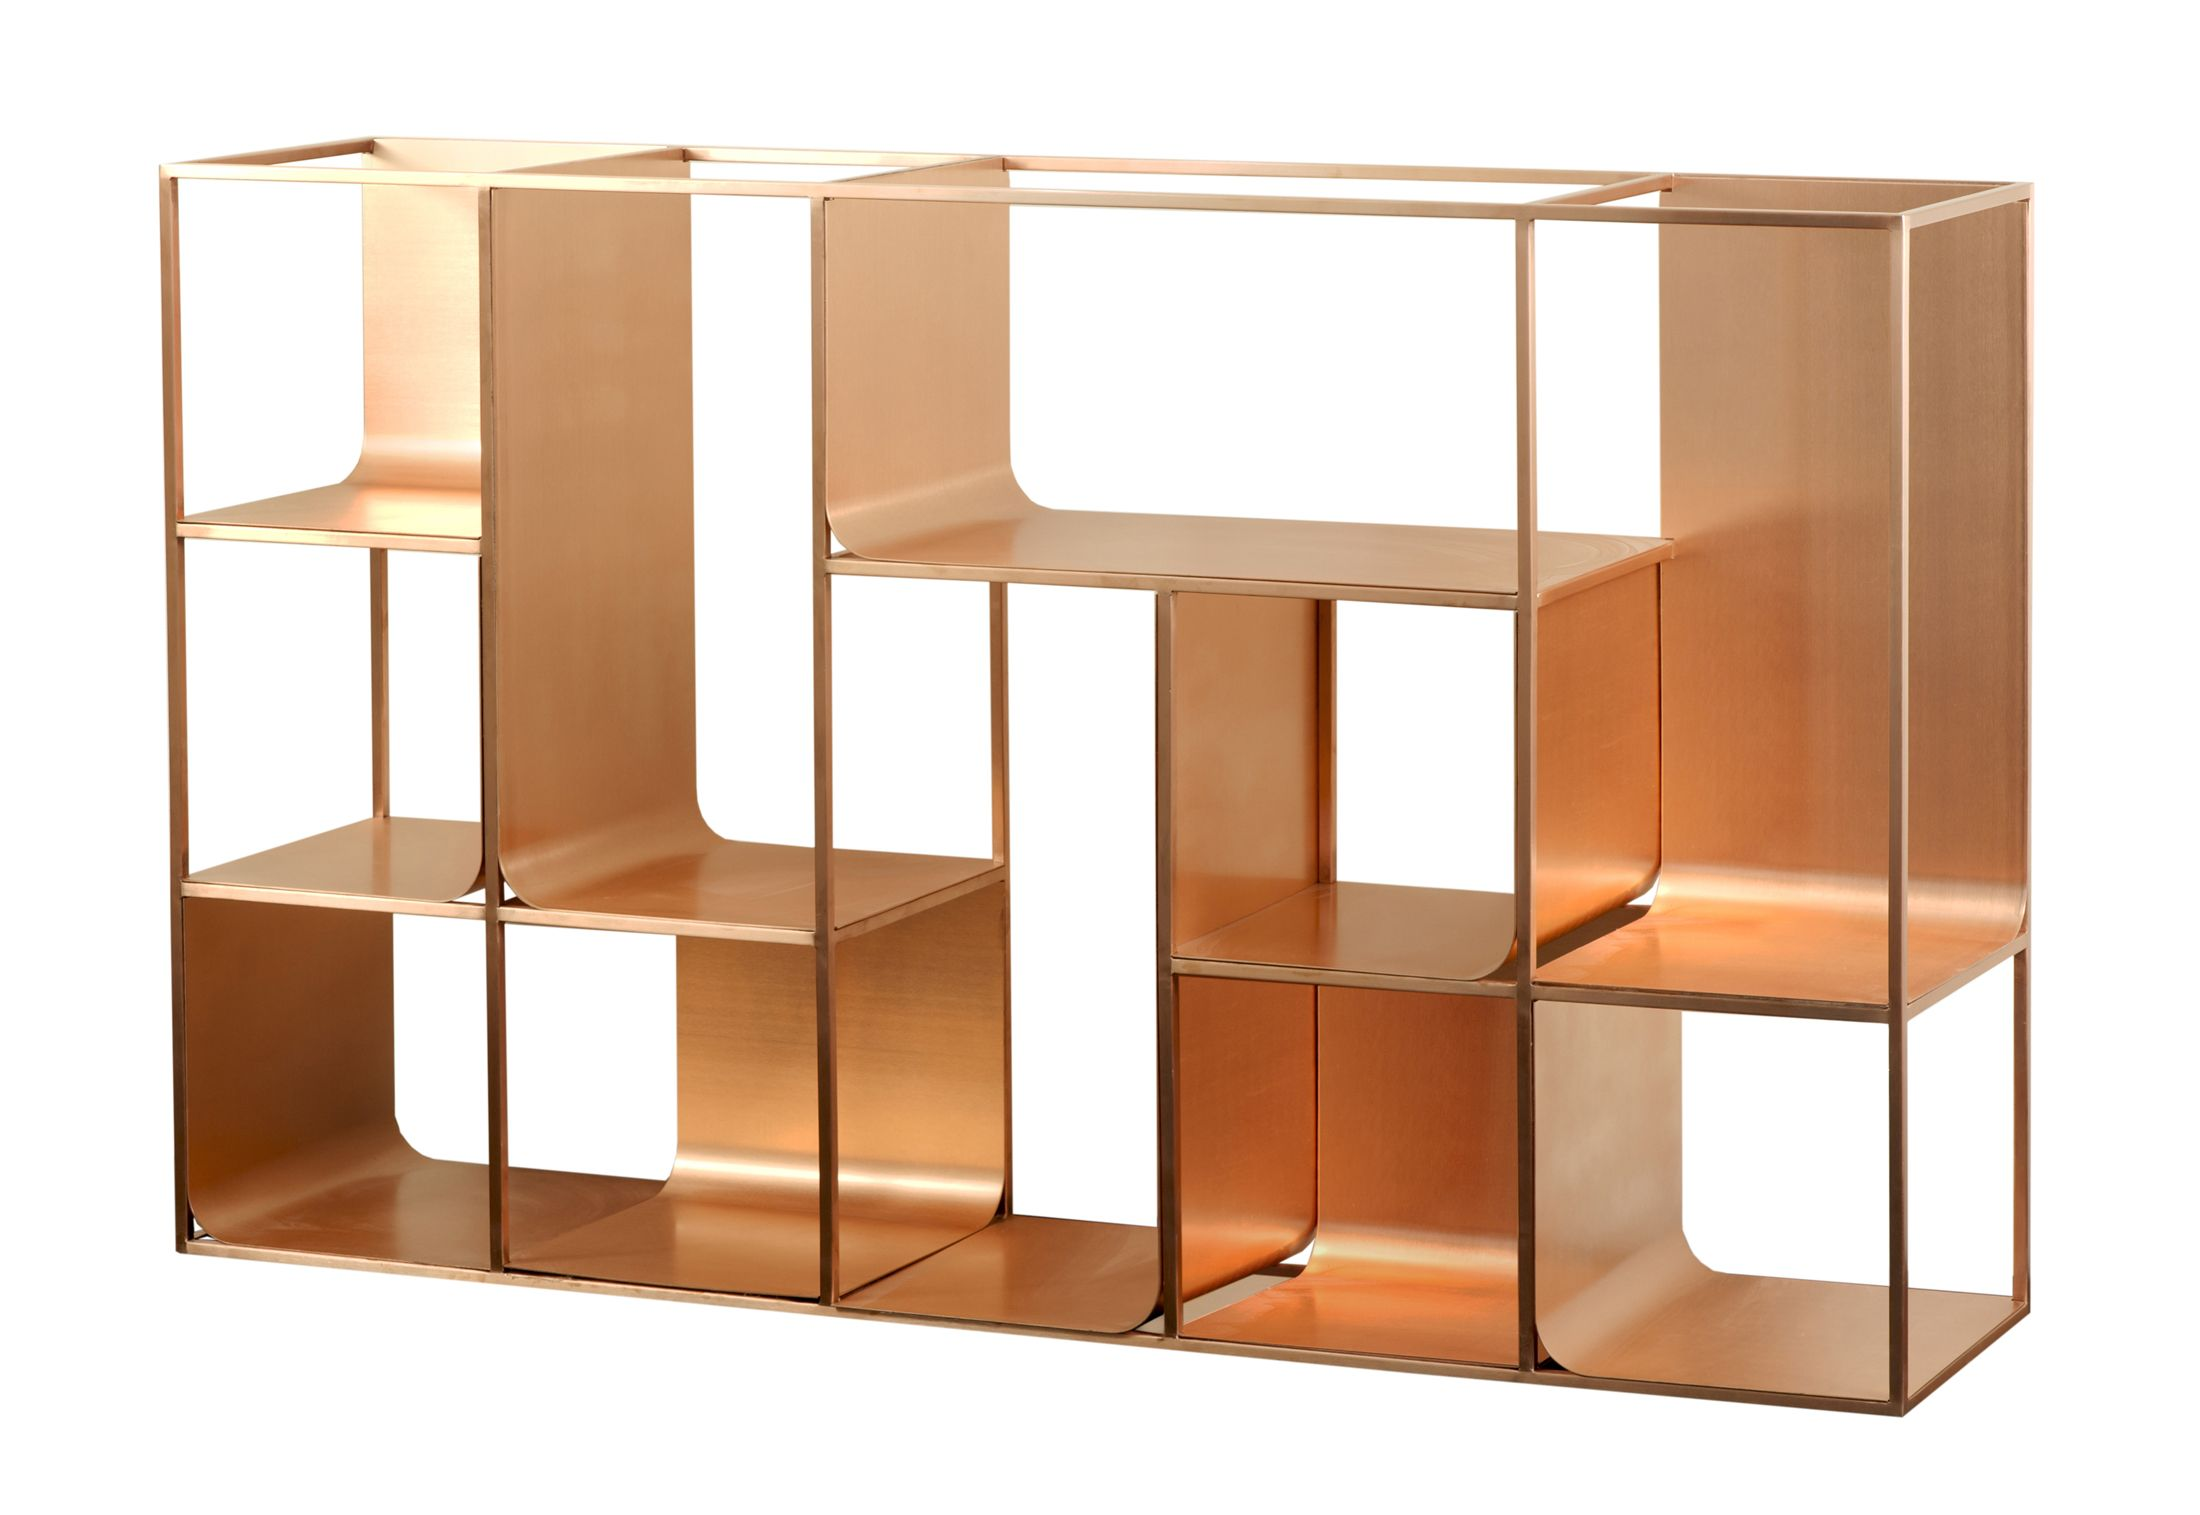 KME Copper View Shelf By Ferruccio Laviani